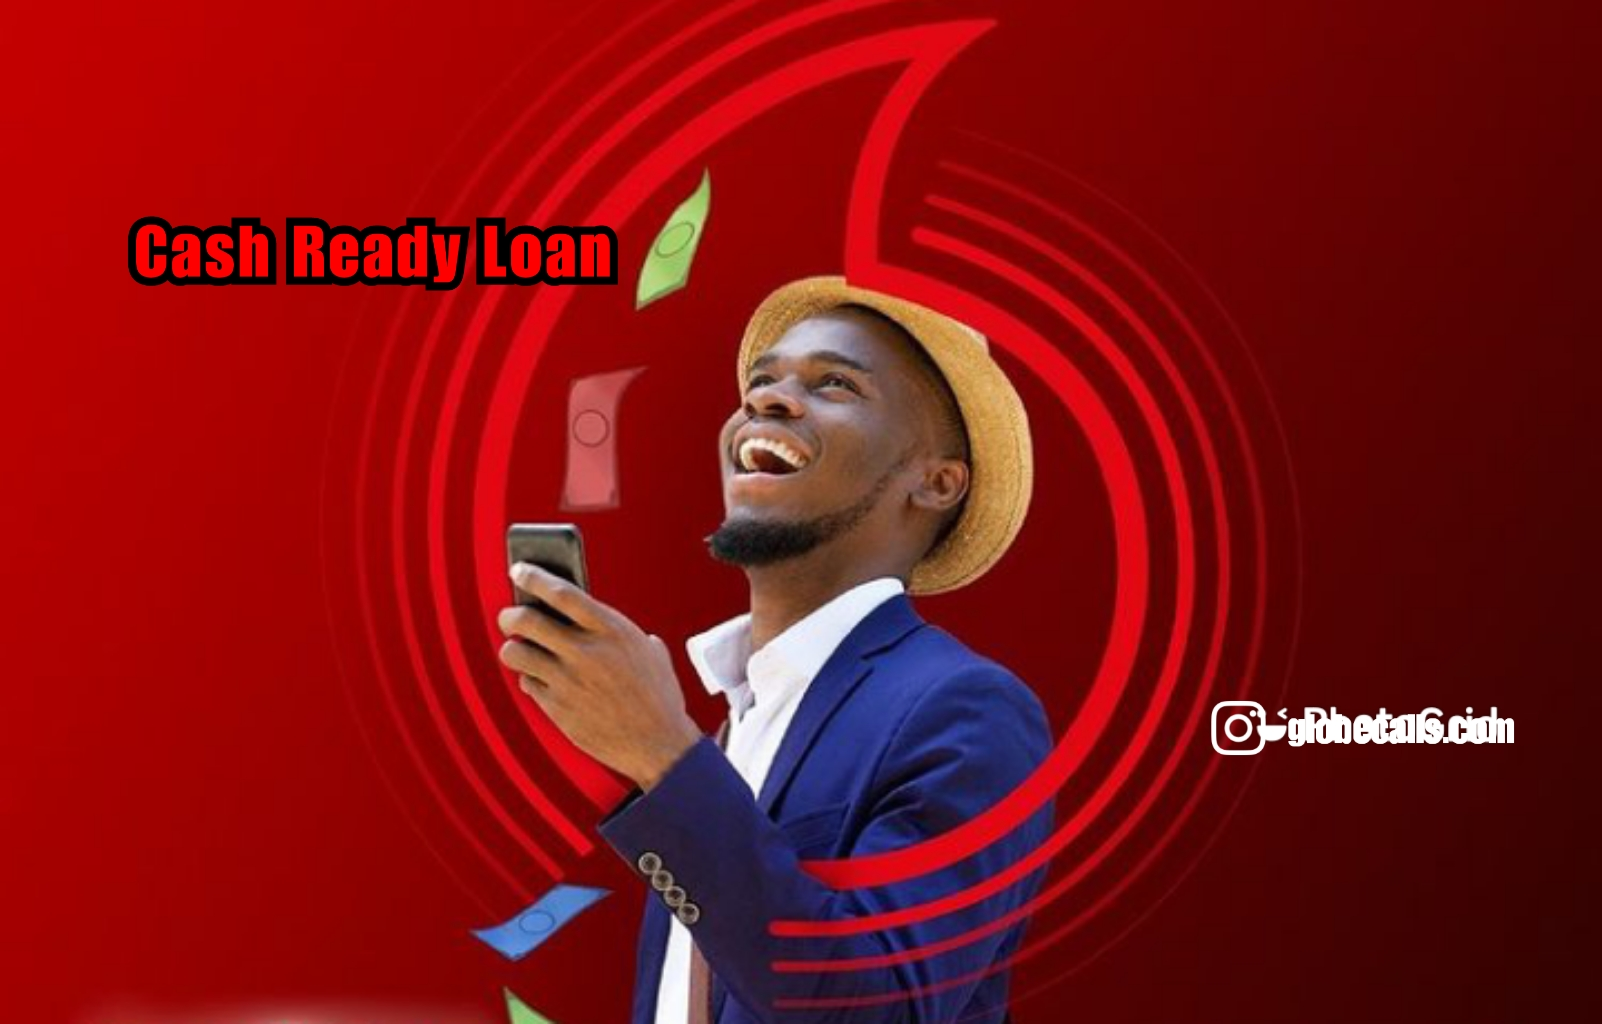 Vodafone Cash Ready Loan 2021: Methods To Acquiring 1000Ghc